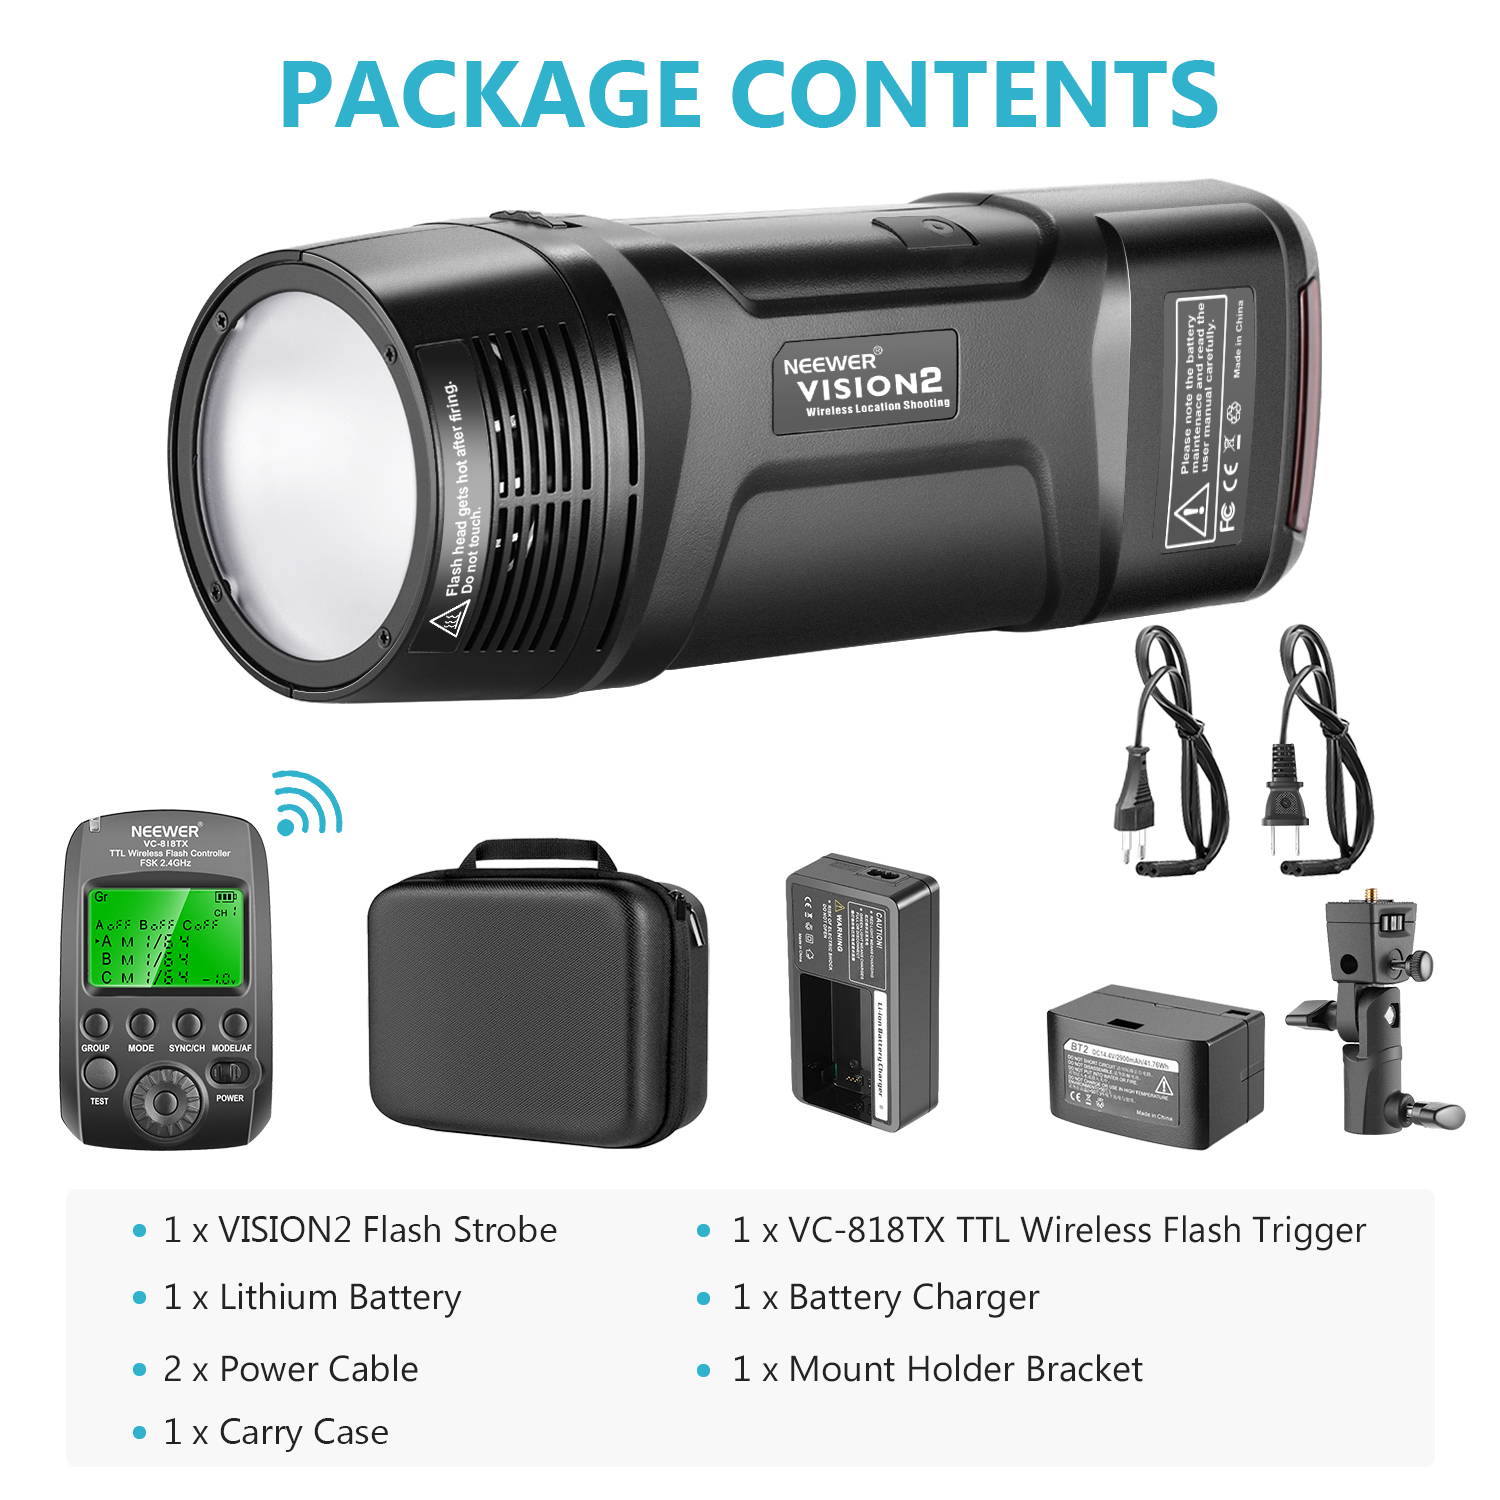 Neewer VISION2 200Ws 2.4G TTL Flash Strobe Compatible with Nikon DSLR Cameras 1//8000 HSS Pocket Monolight with Wireless Trigger 2900mAh Battery to Cover 500 Full Power Shots Recycle in 0.01-1.8 Sec